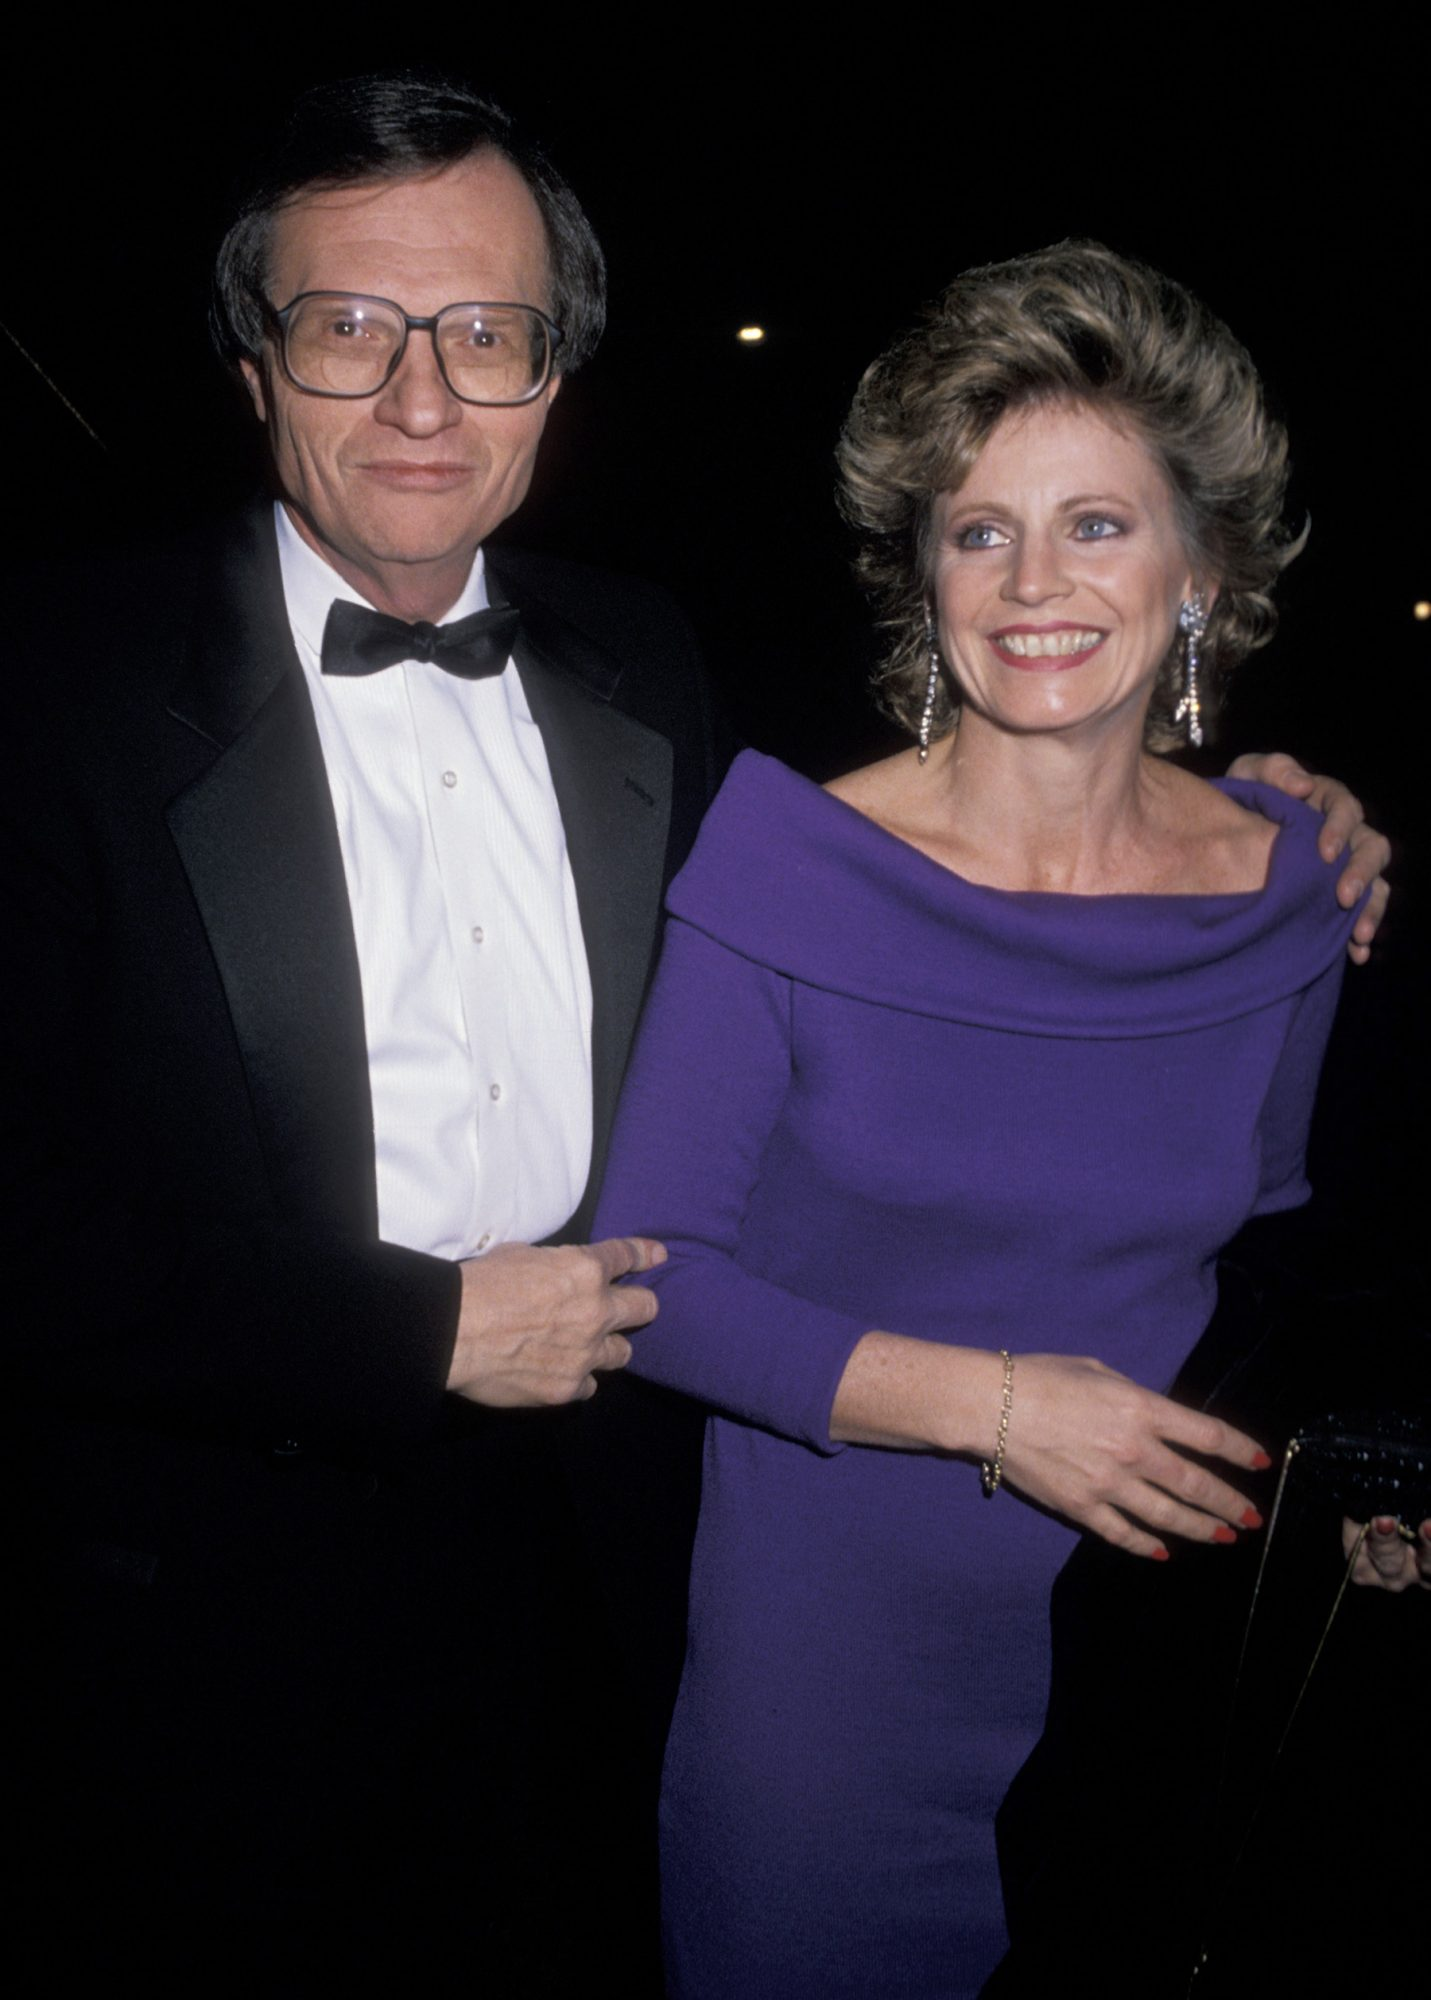 Larry King and Sharon Lepore